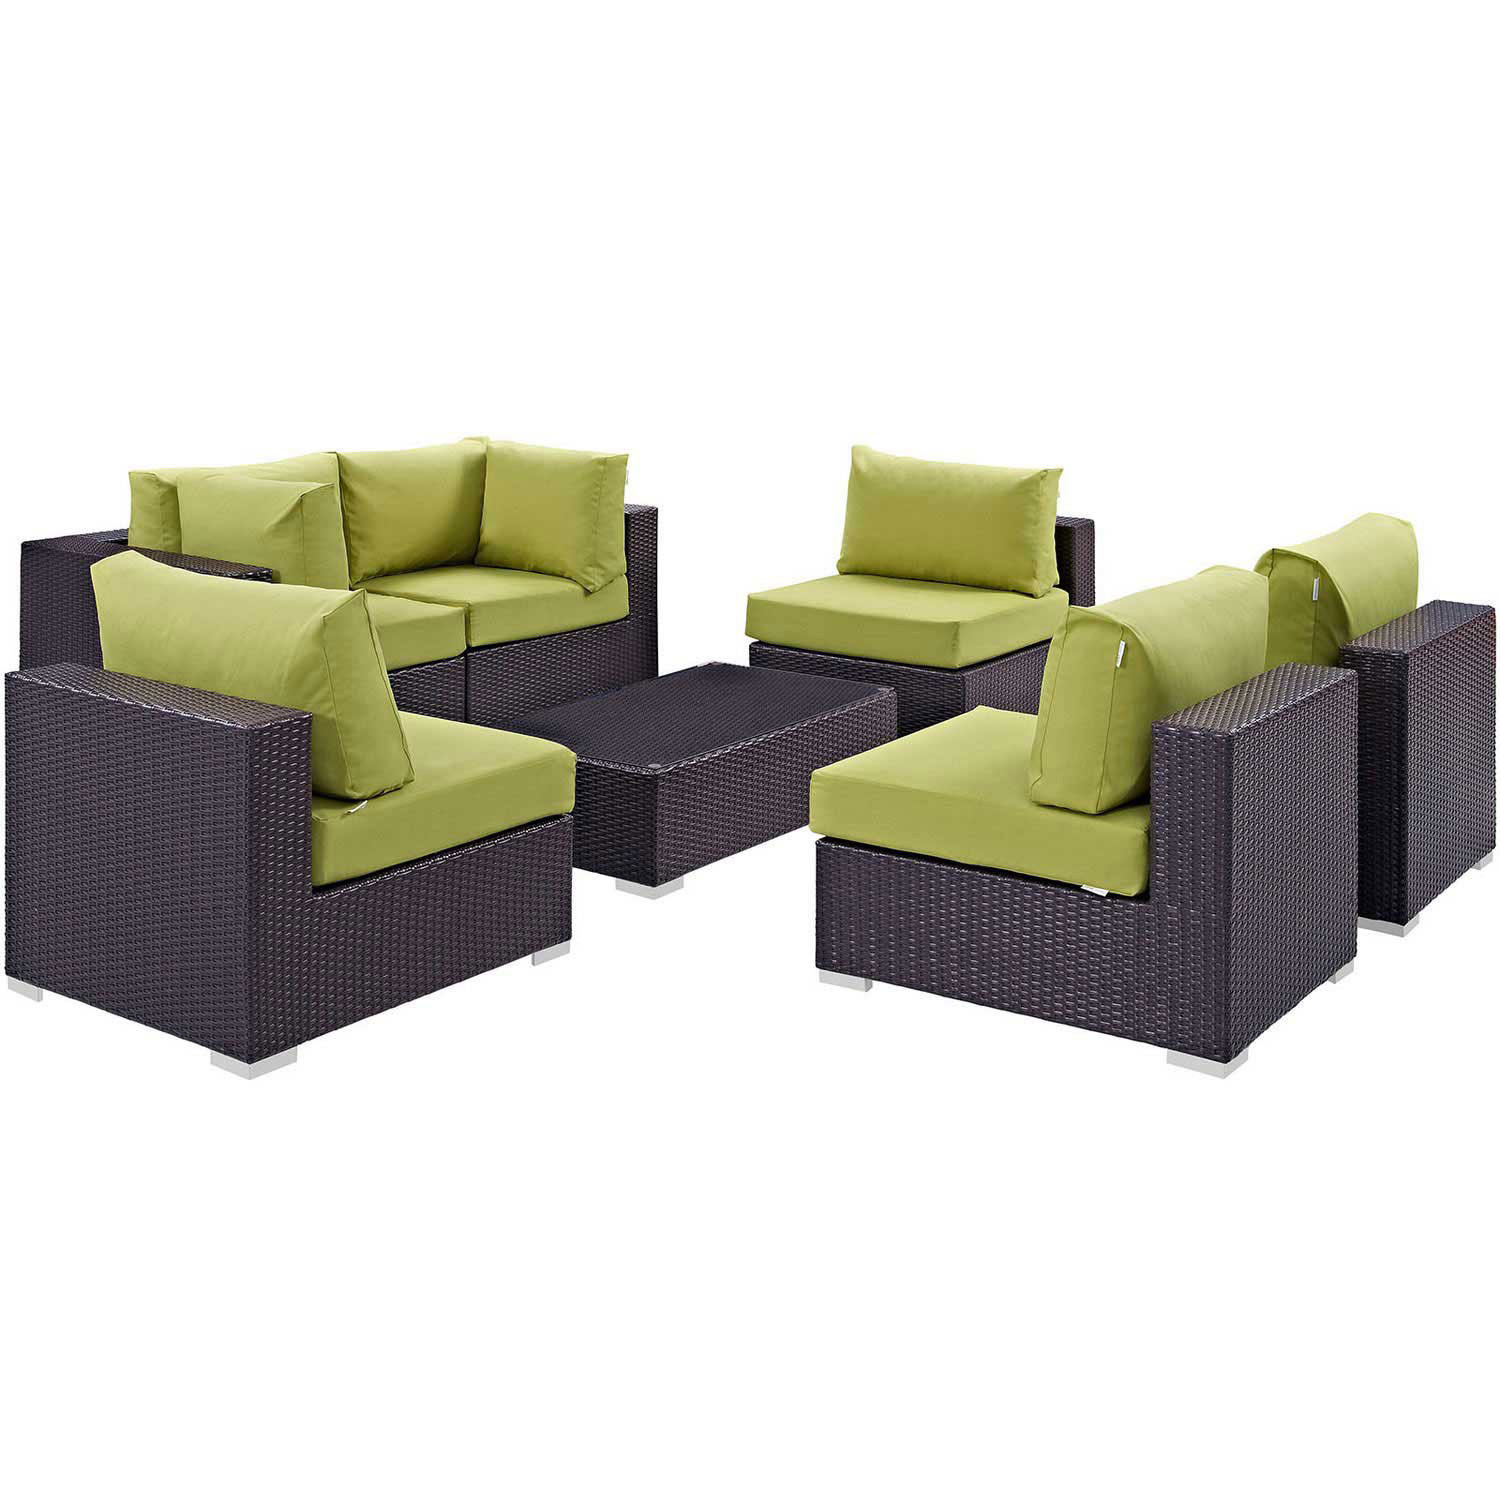 Modway Convene 7 Piece Outdoor Patio Sectional Set - Espresso Peridot